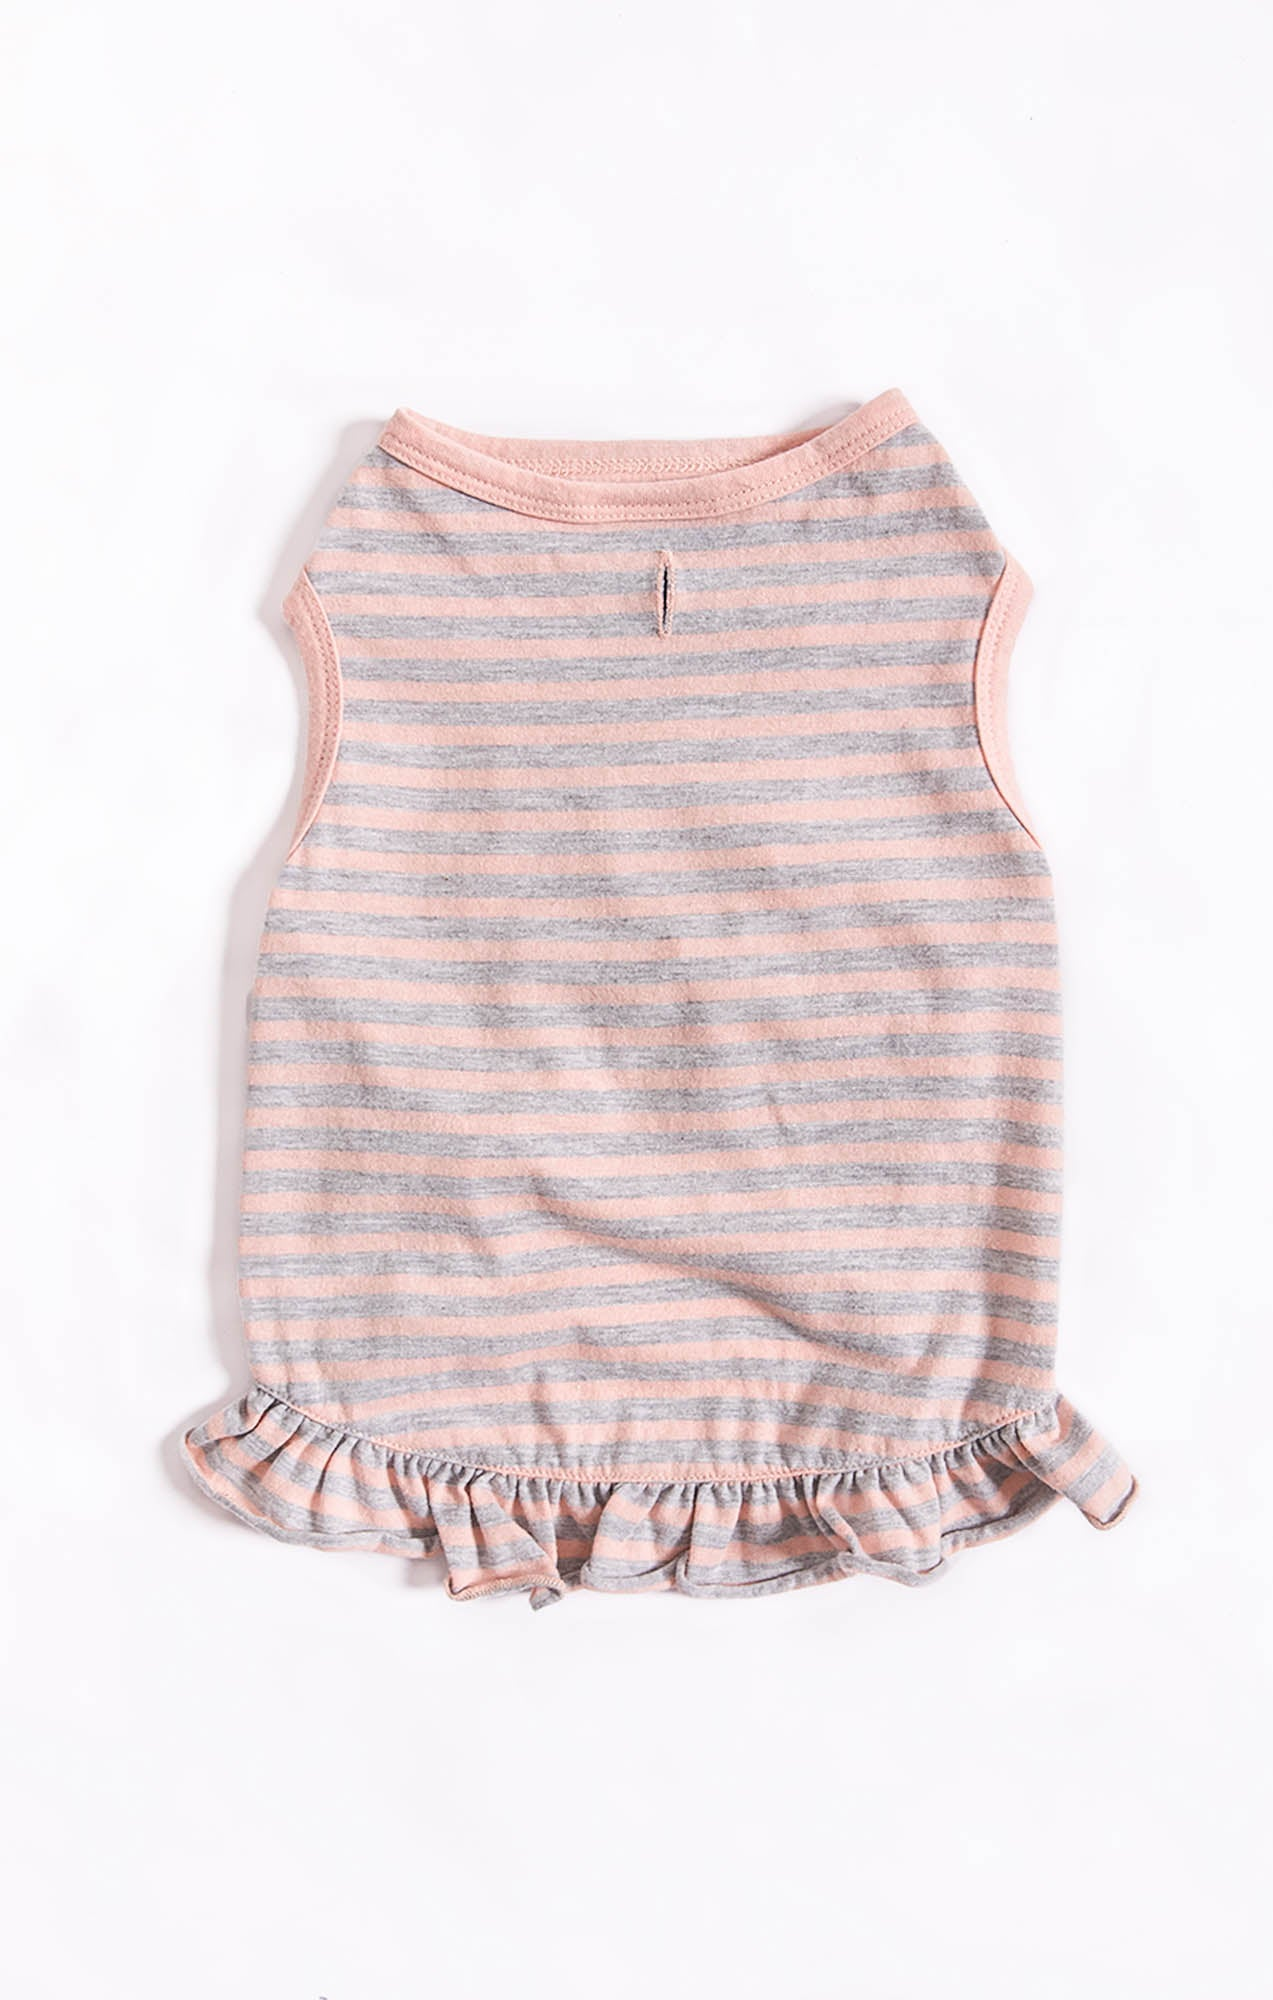 Tops The Striped Ruffle Top by ZOO SUPPLY Heather Grey/Pink Dust